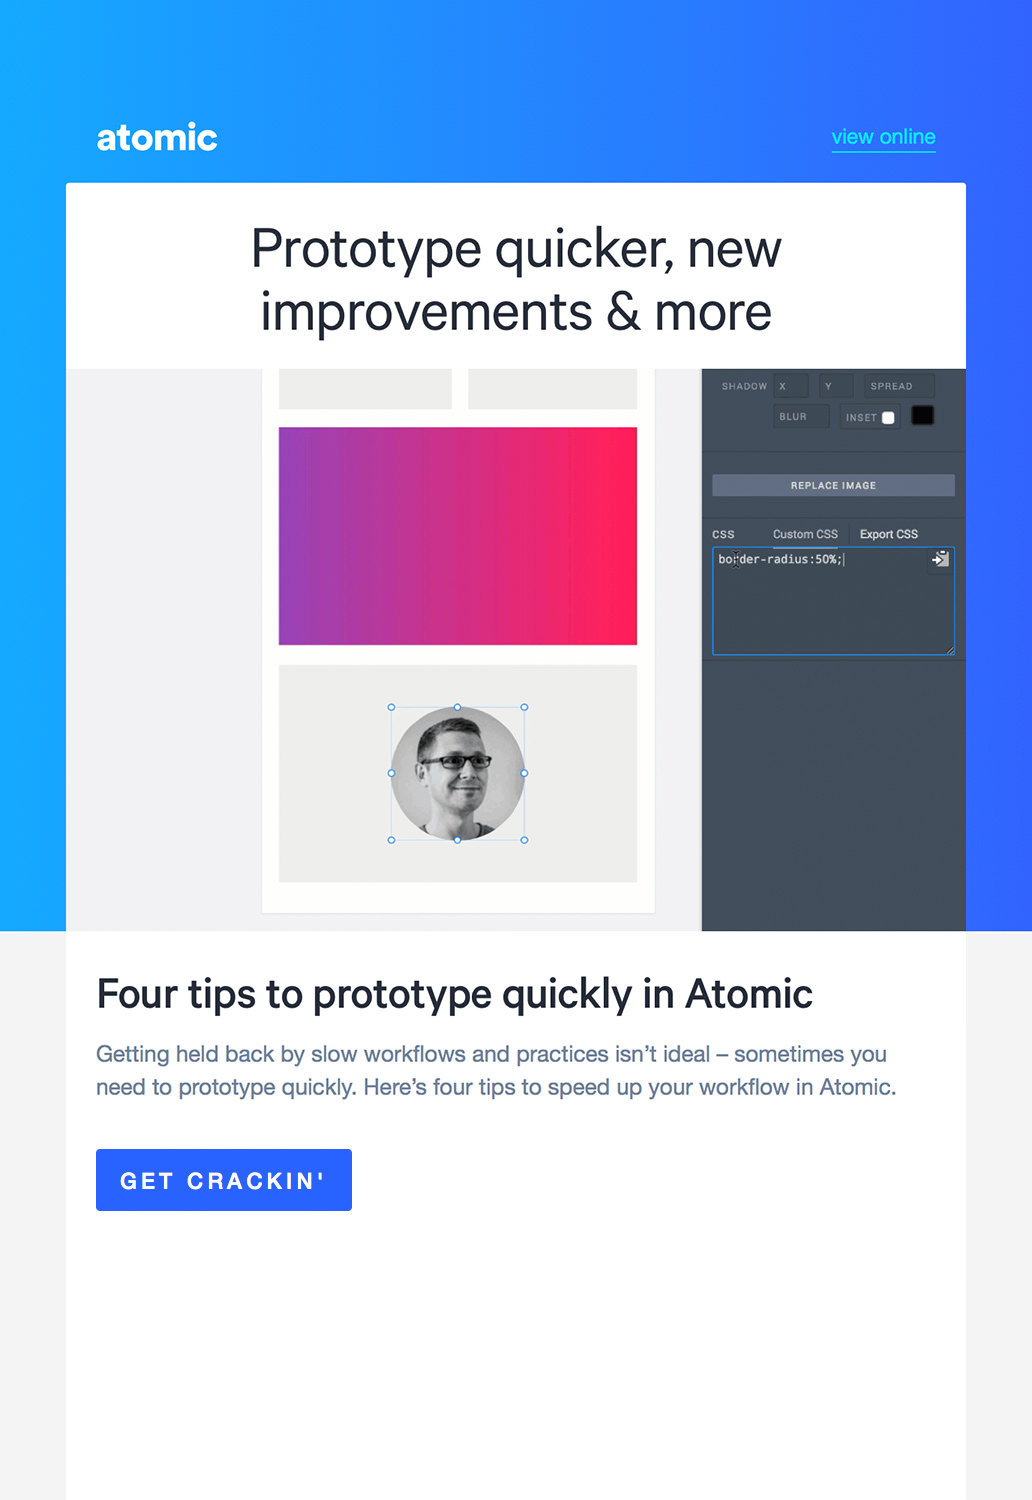 Technology Email Marketing - Atomic